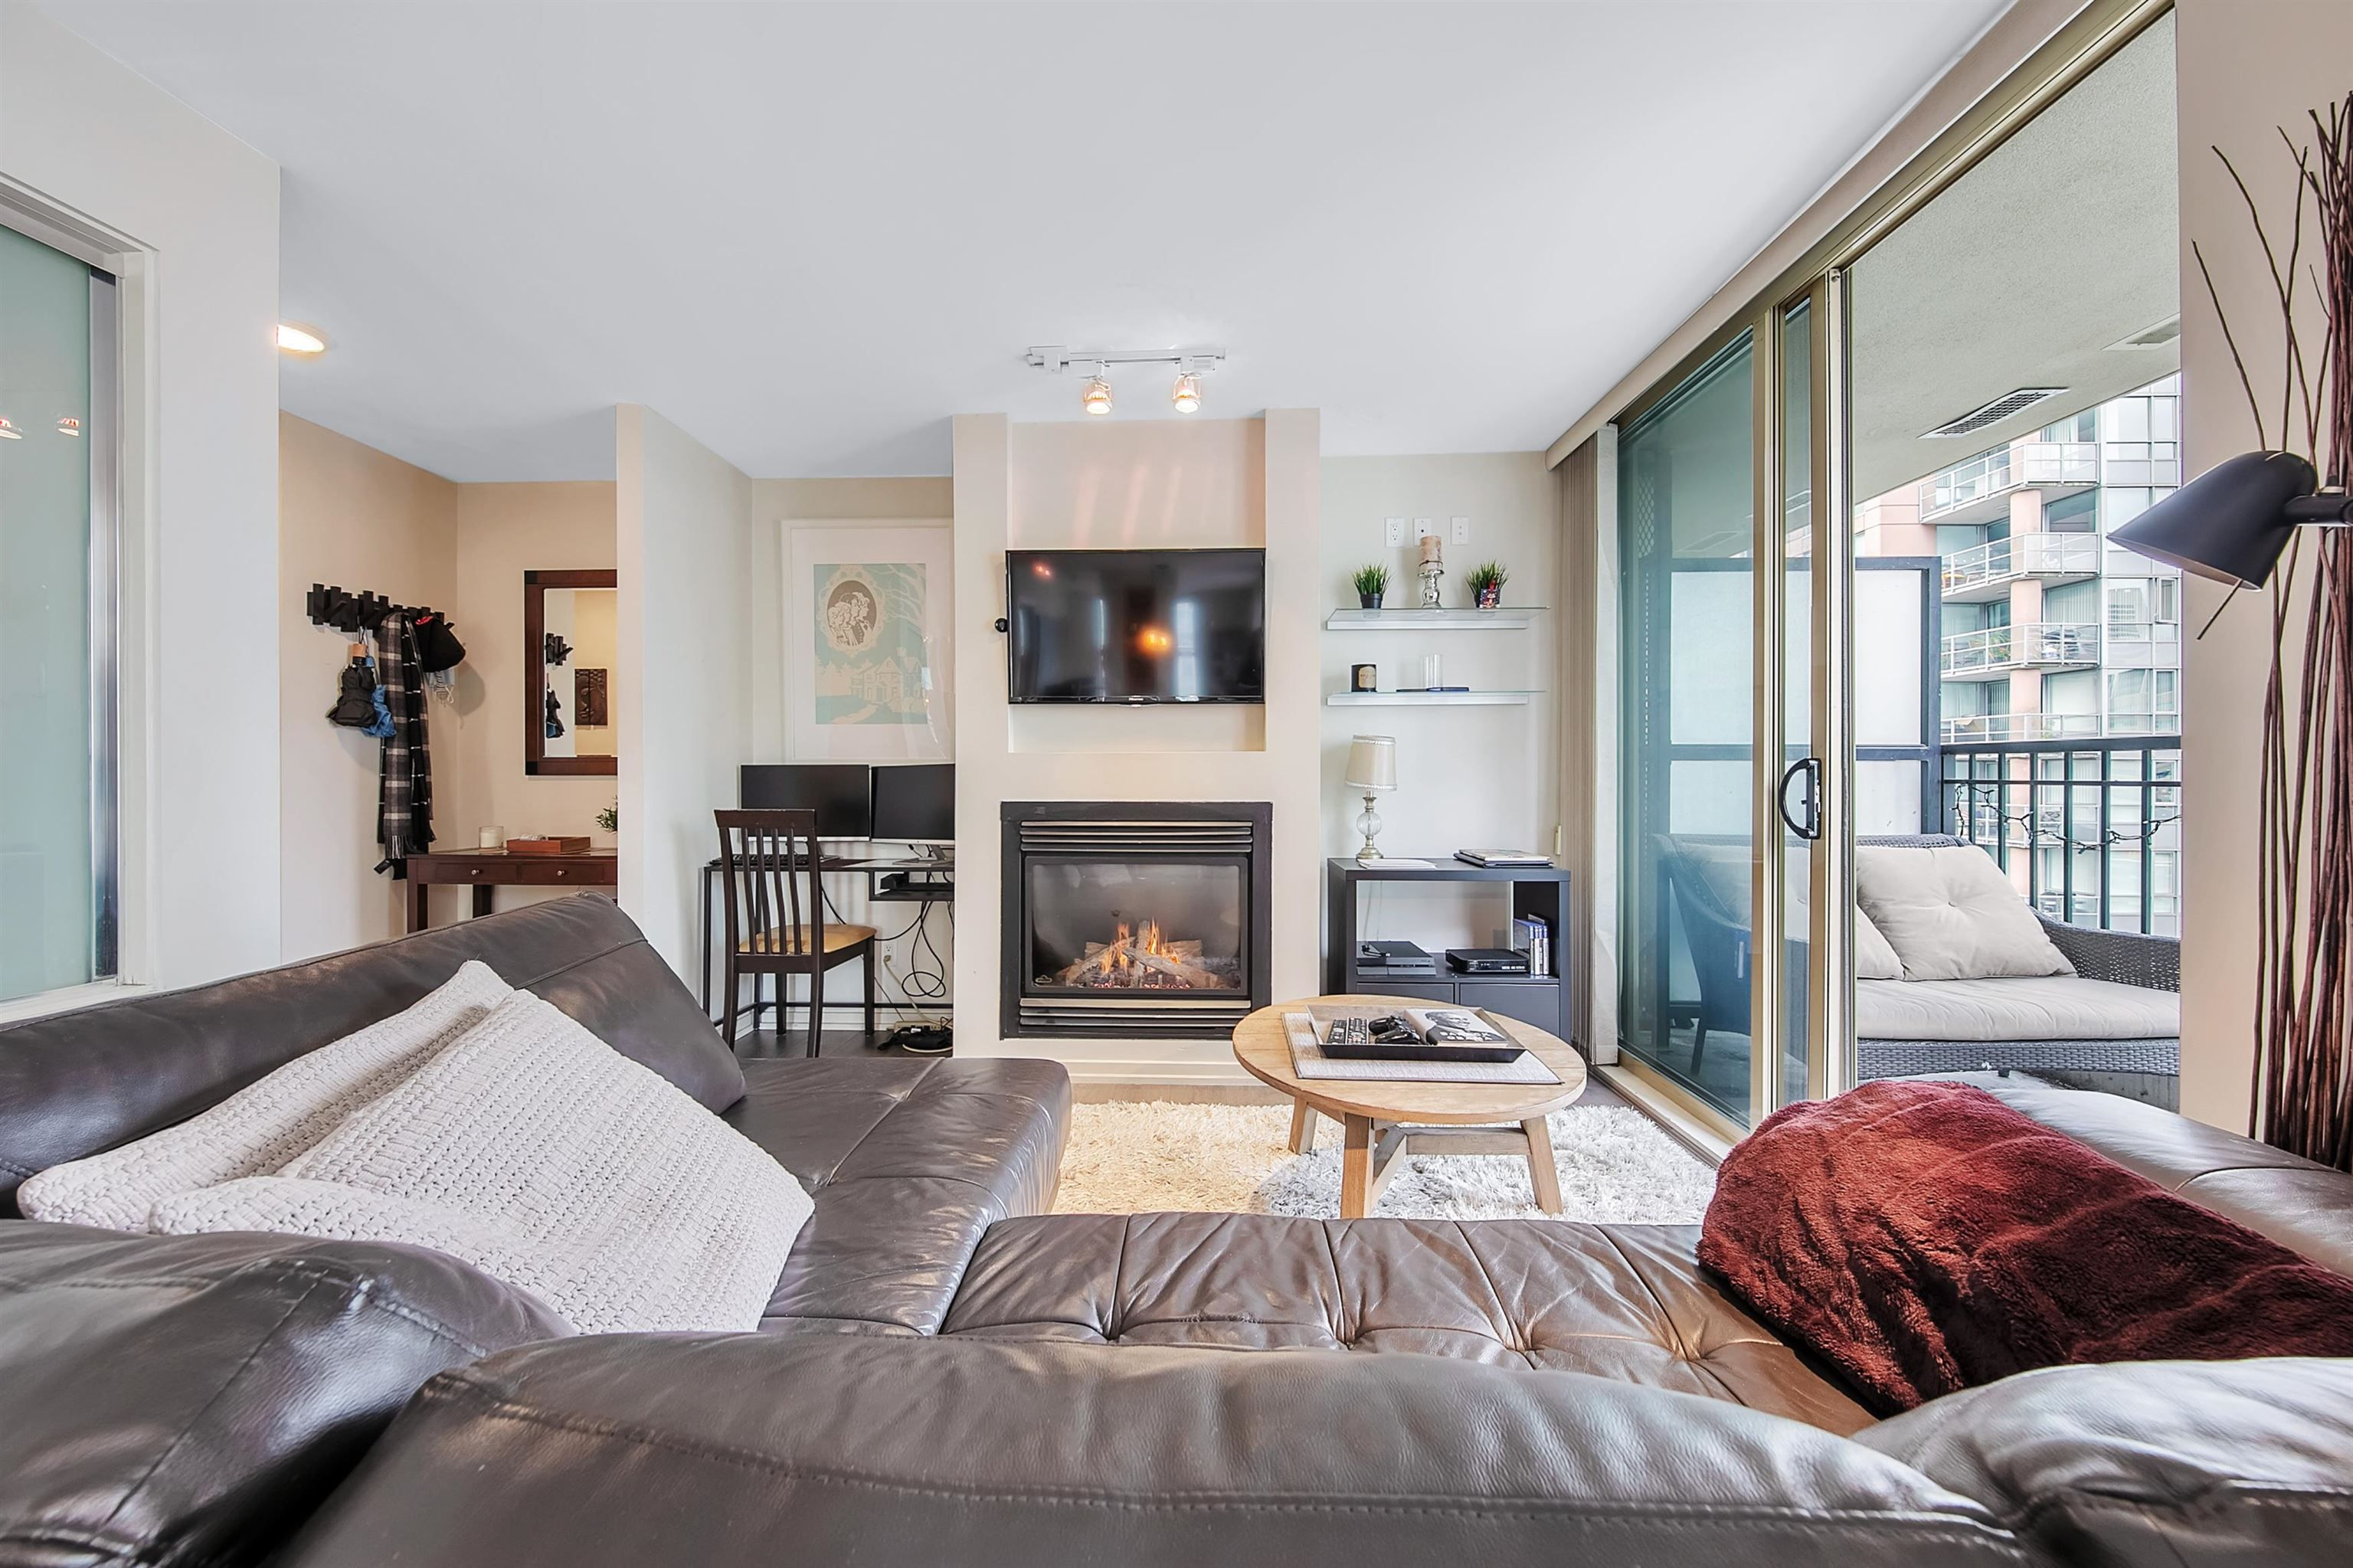 Main Photo: 1203 969 RICHARDS STREET in Vancouver: Downtown VW Condo for sale (Vancouver West)  : MLS®# R2614127